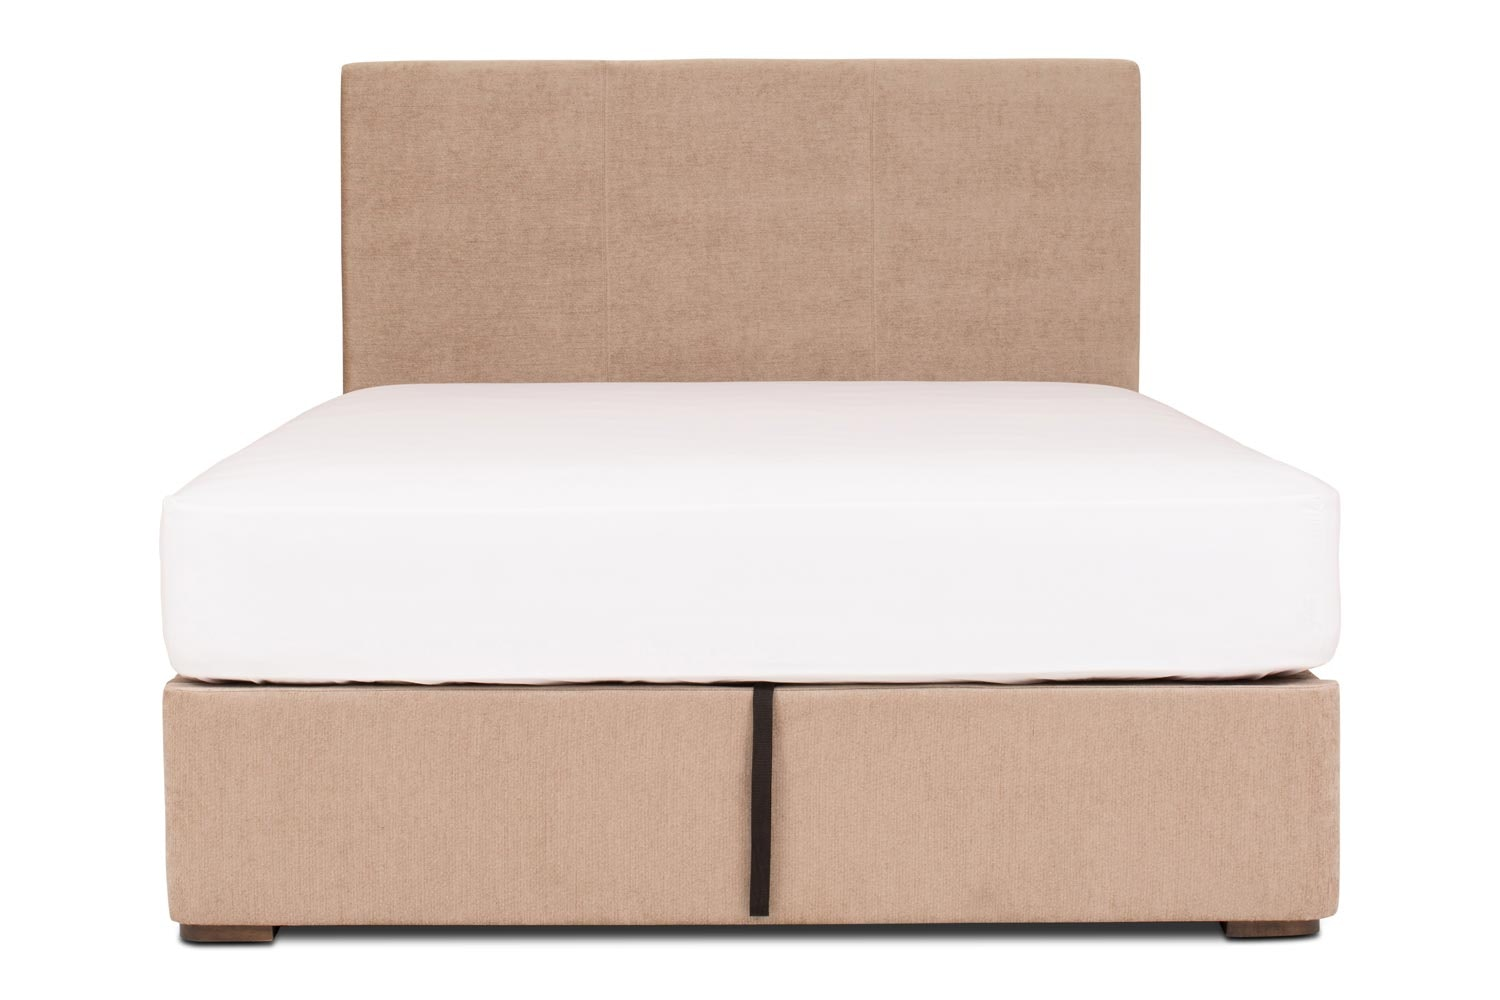 Duval Ottoman Bed with V Stitch Headboard | 4Ft6 | Mink